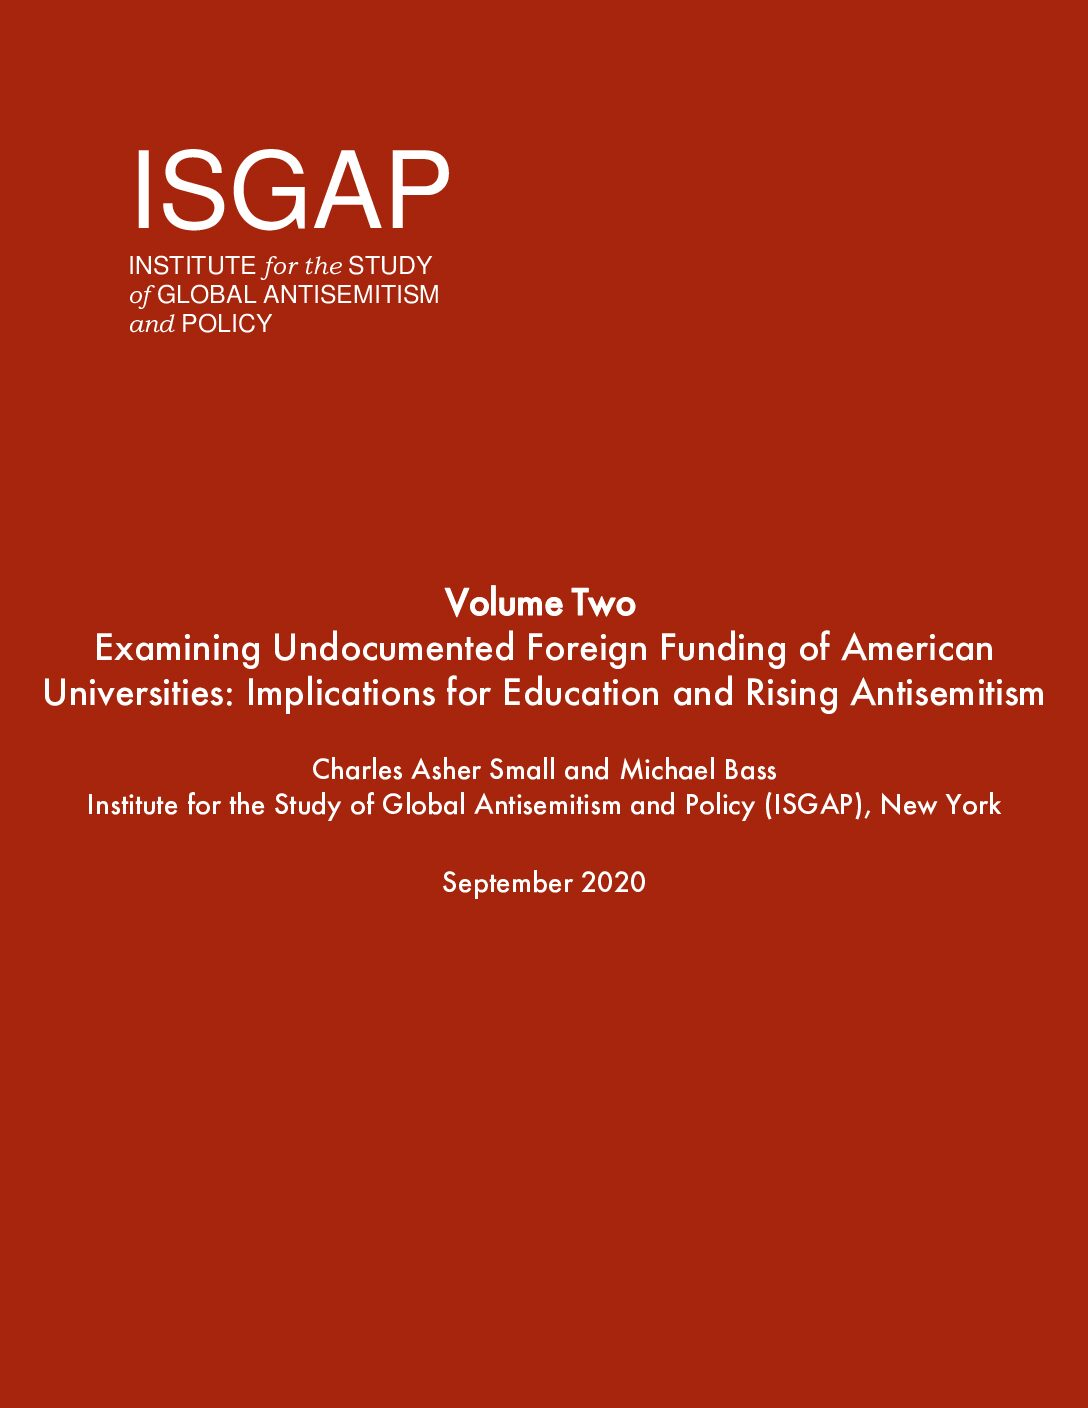 Volume II – Examining Undocumented Foreign Funding of American Universities: Implications for Education and Rising Antisemitism by Charles Asher Small and Michael Bass